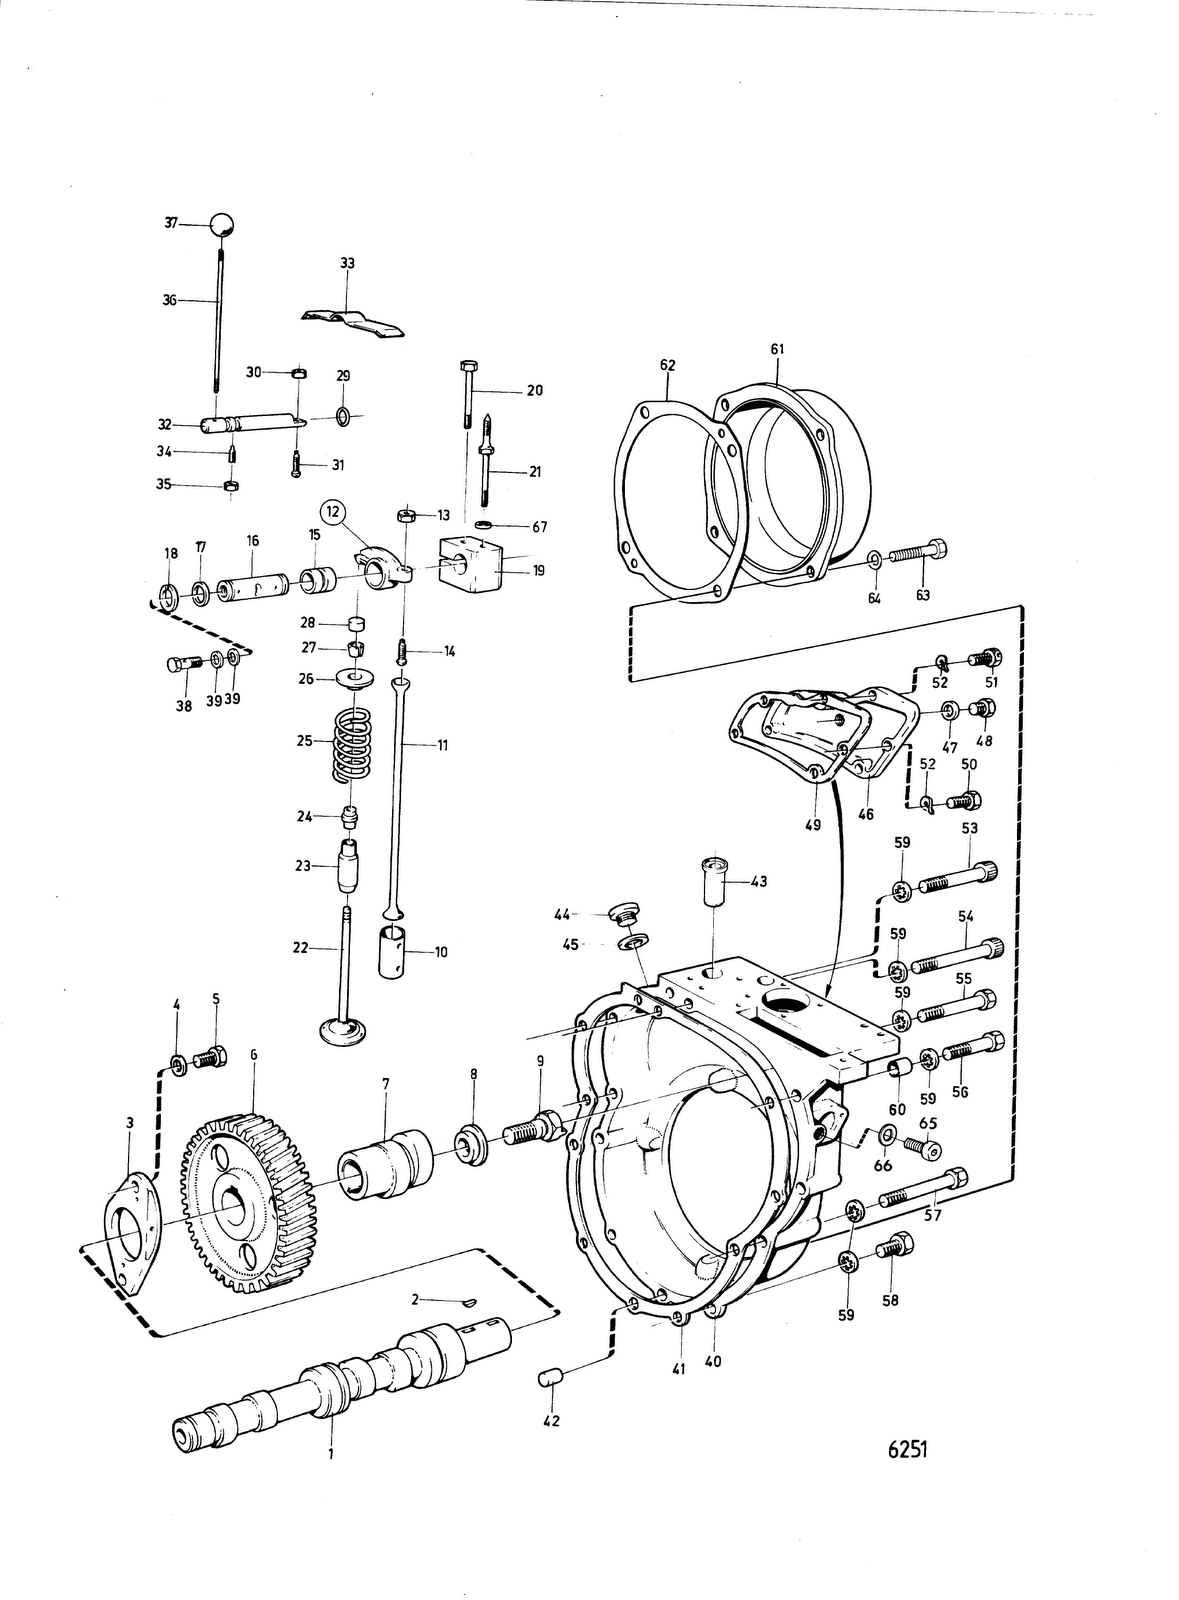 small resolution of volvo penta md11c d manual repair engine marine md17c d online volvo penta md11c wiring diagram